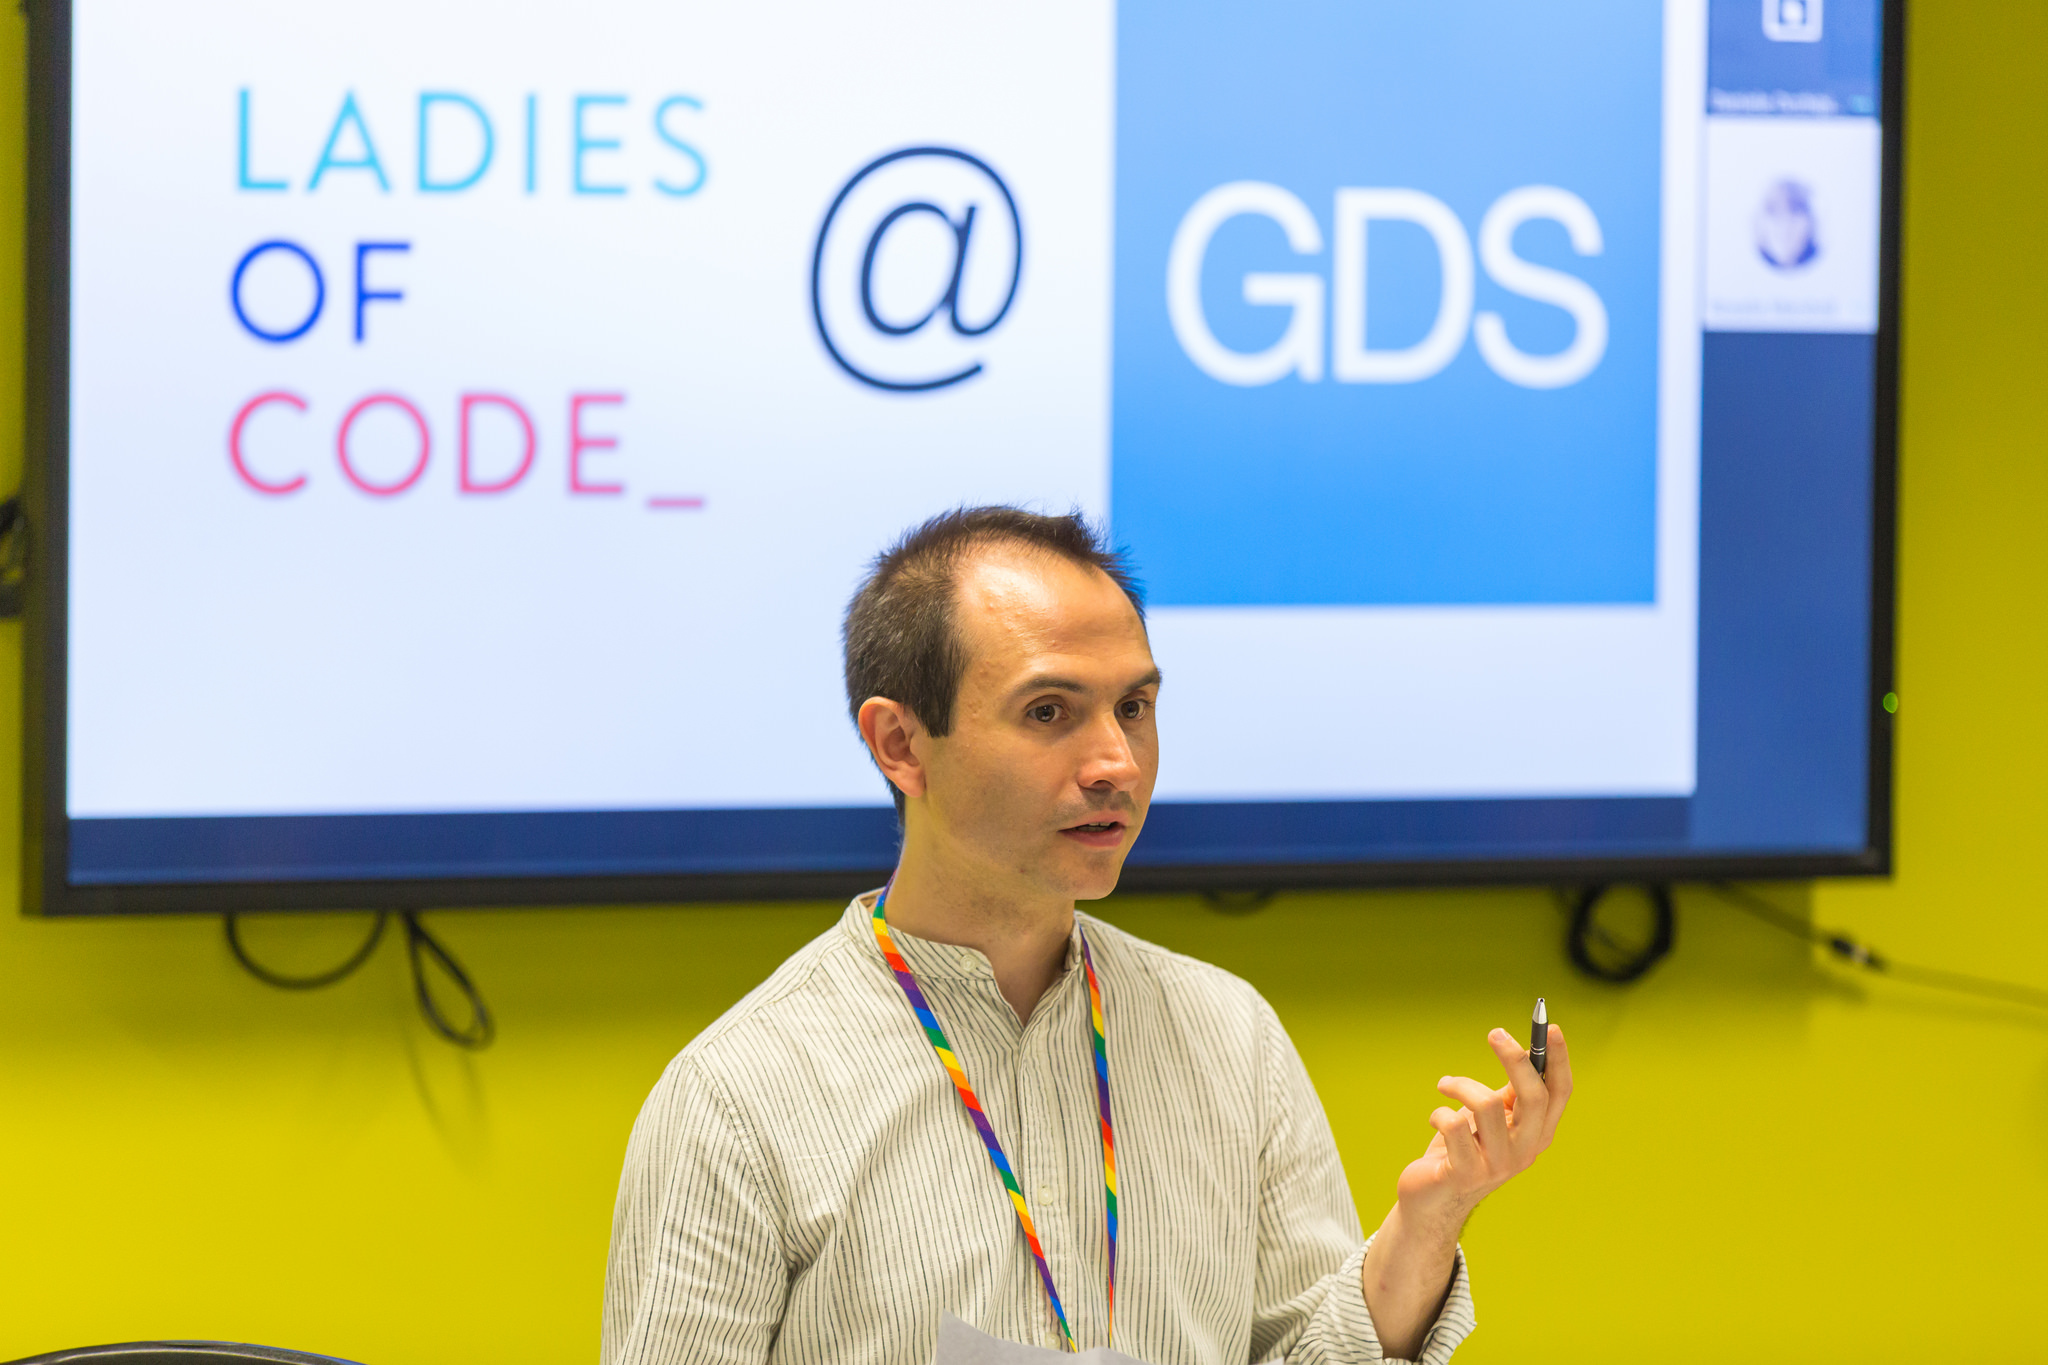 Daniele Occhipinti at Ladies of Code meetup